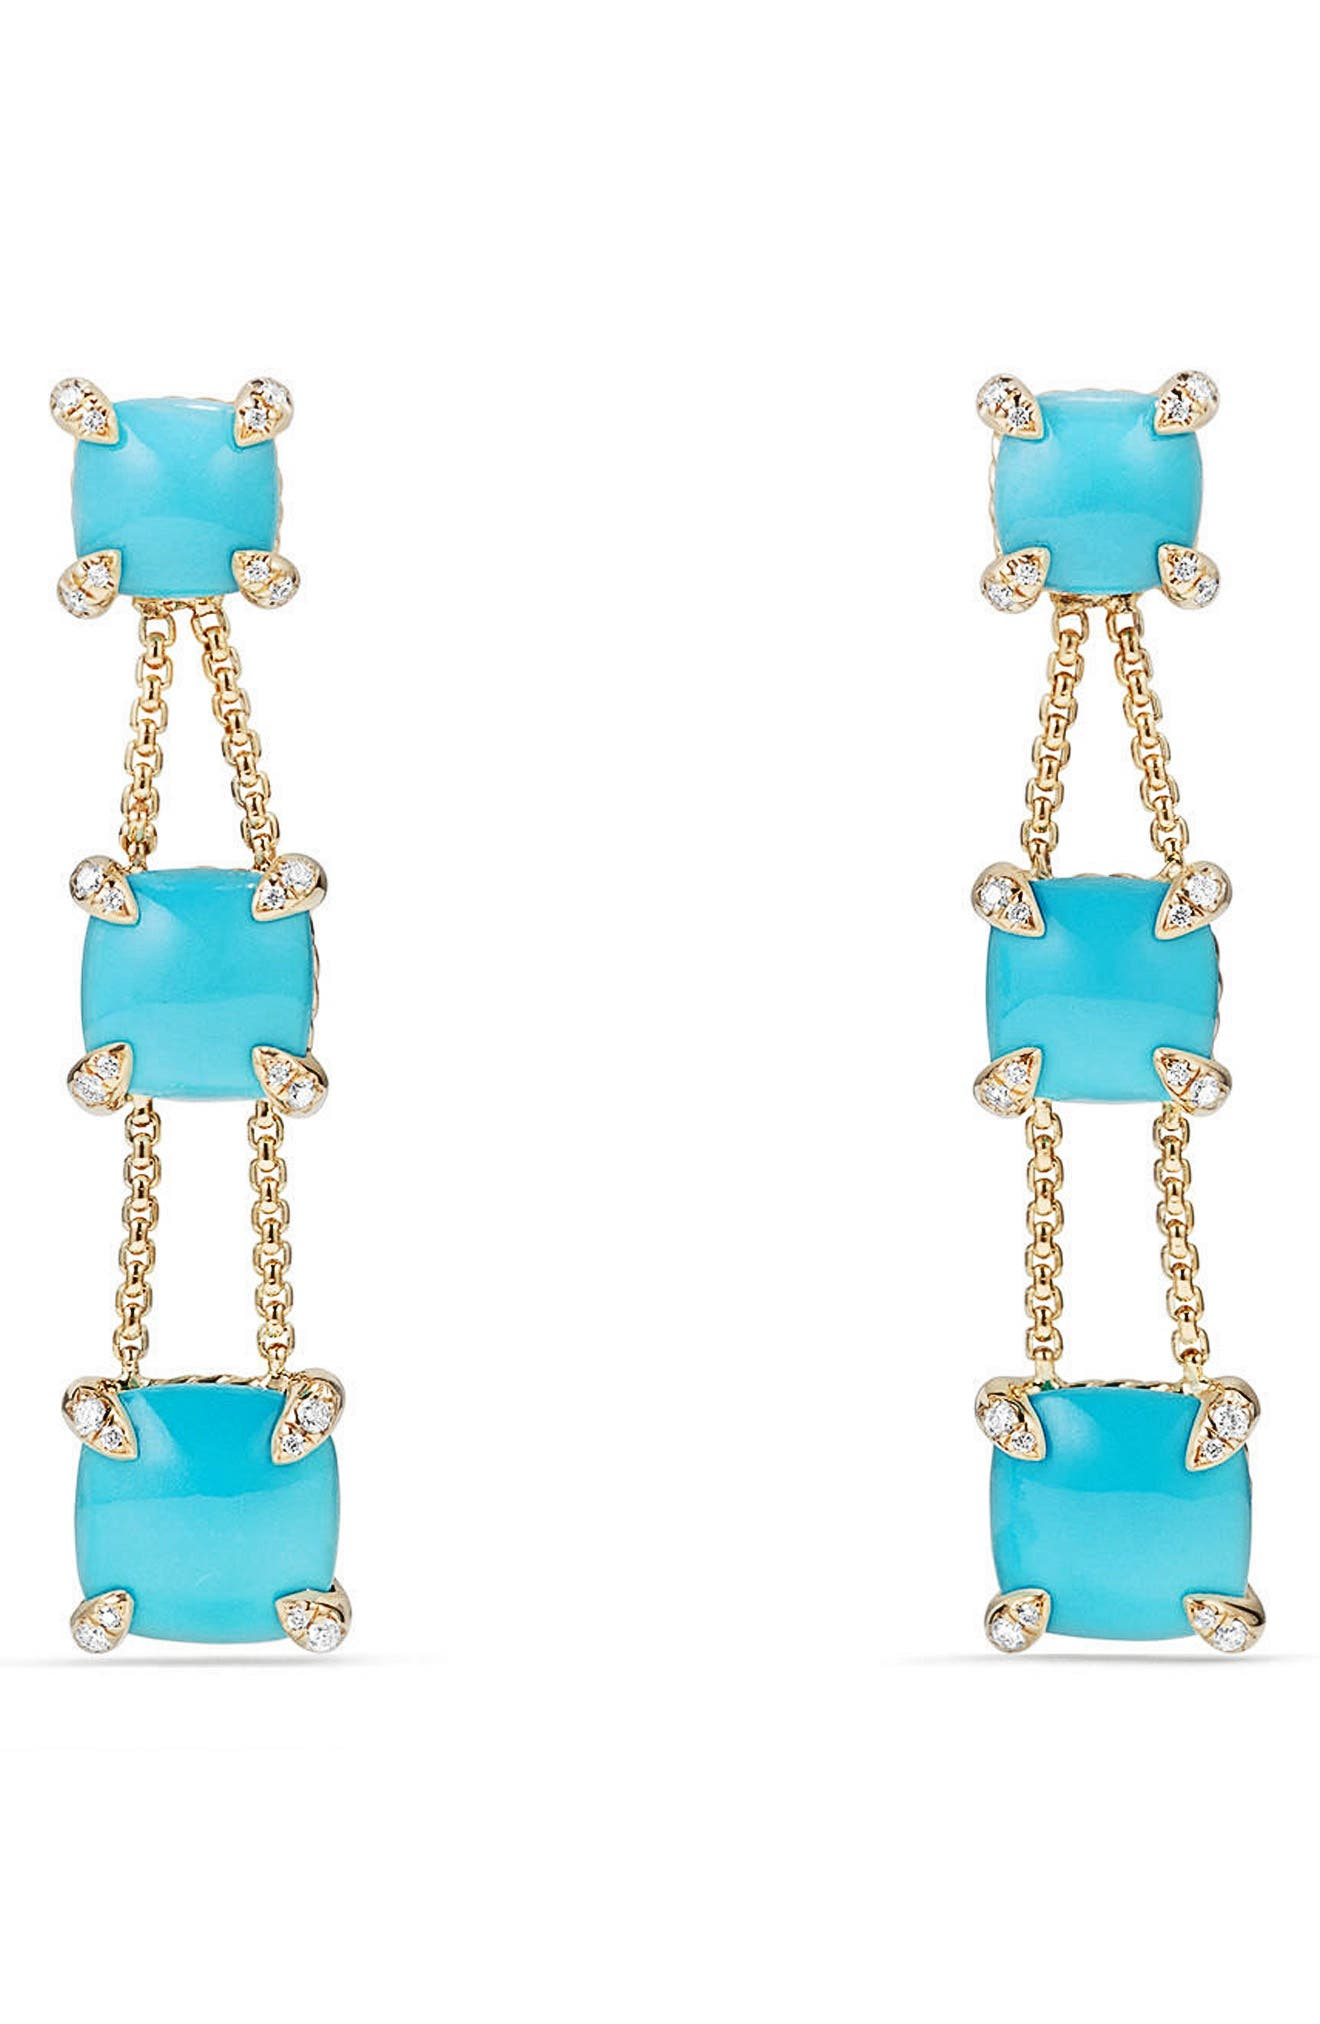 Châtelaine Linear Chain Earrings in 18K Gold with Semiprecious Stone and Diamonds,                         Main,                         color, TURQUOISE